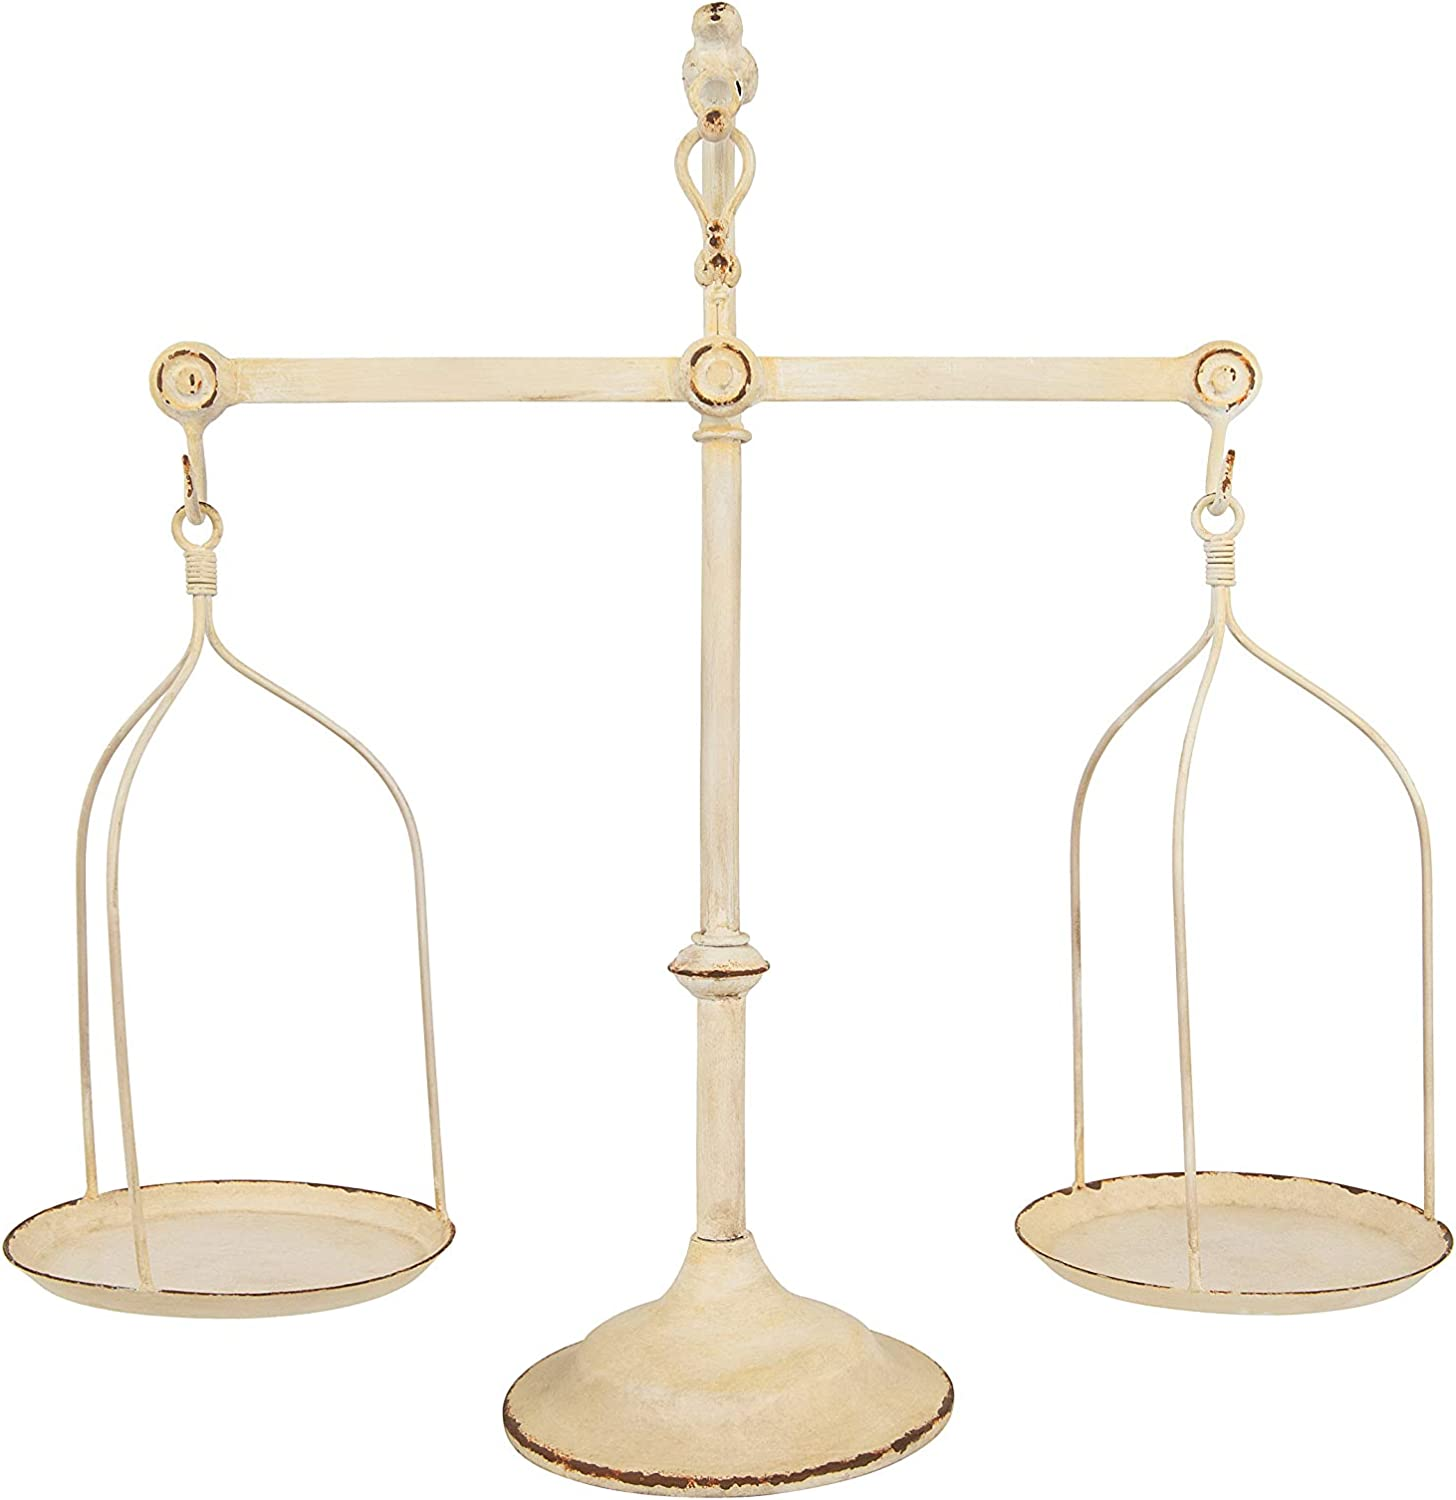 Creative Co-op Decorative Distressed Vintage Metal Scale with Bird Finial,  Cream